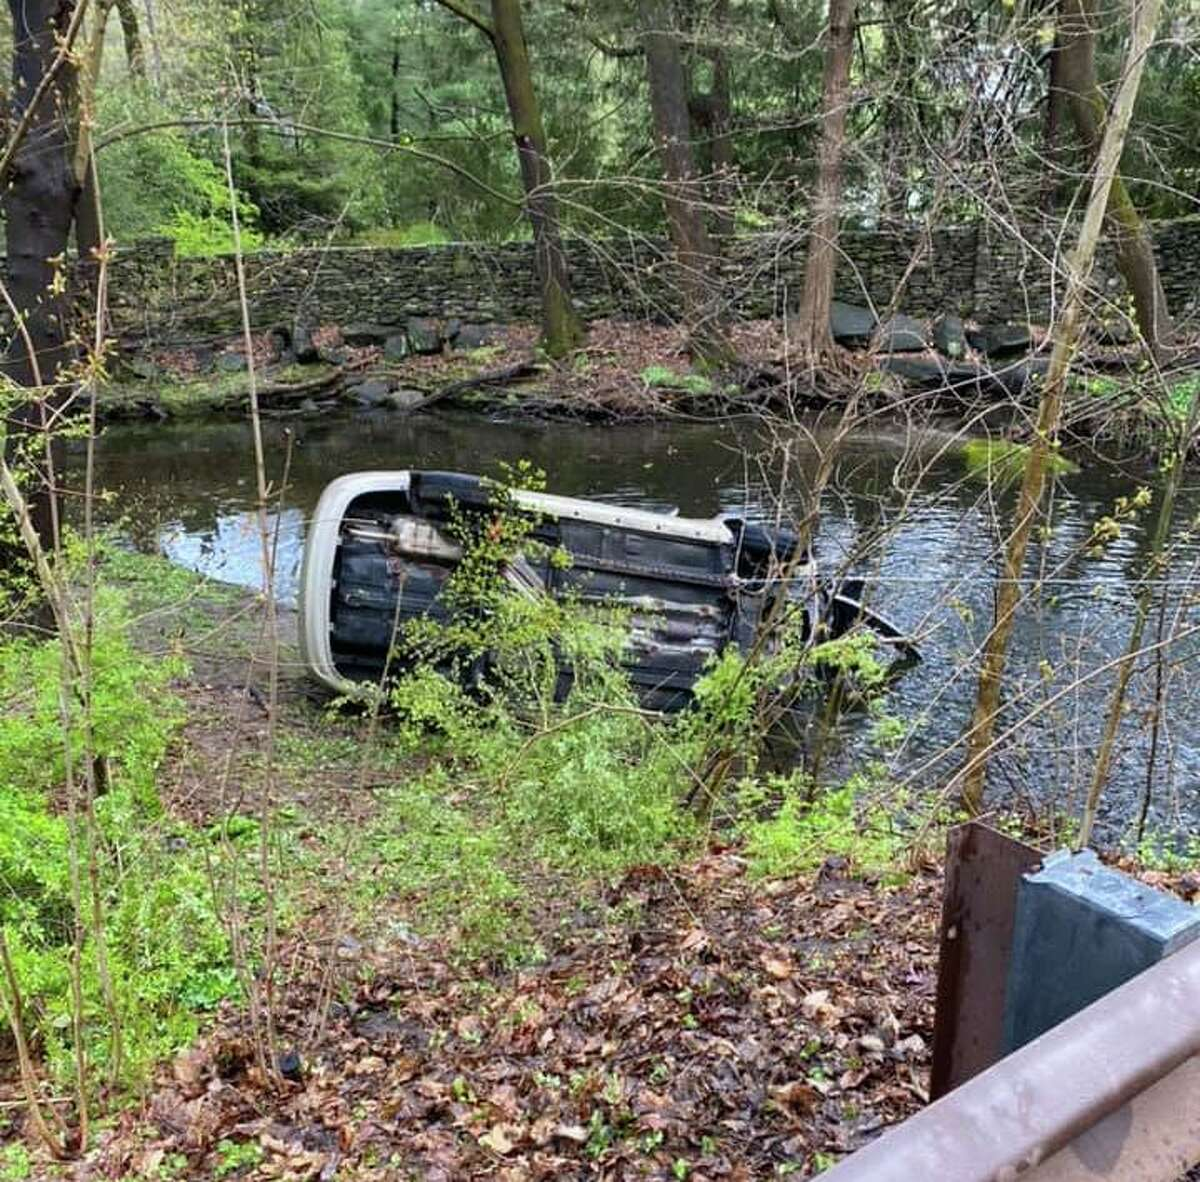 A vehicle down an embankment and in water off Glenville Road in Greenwich, Conn., on April 24, 2020.